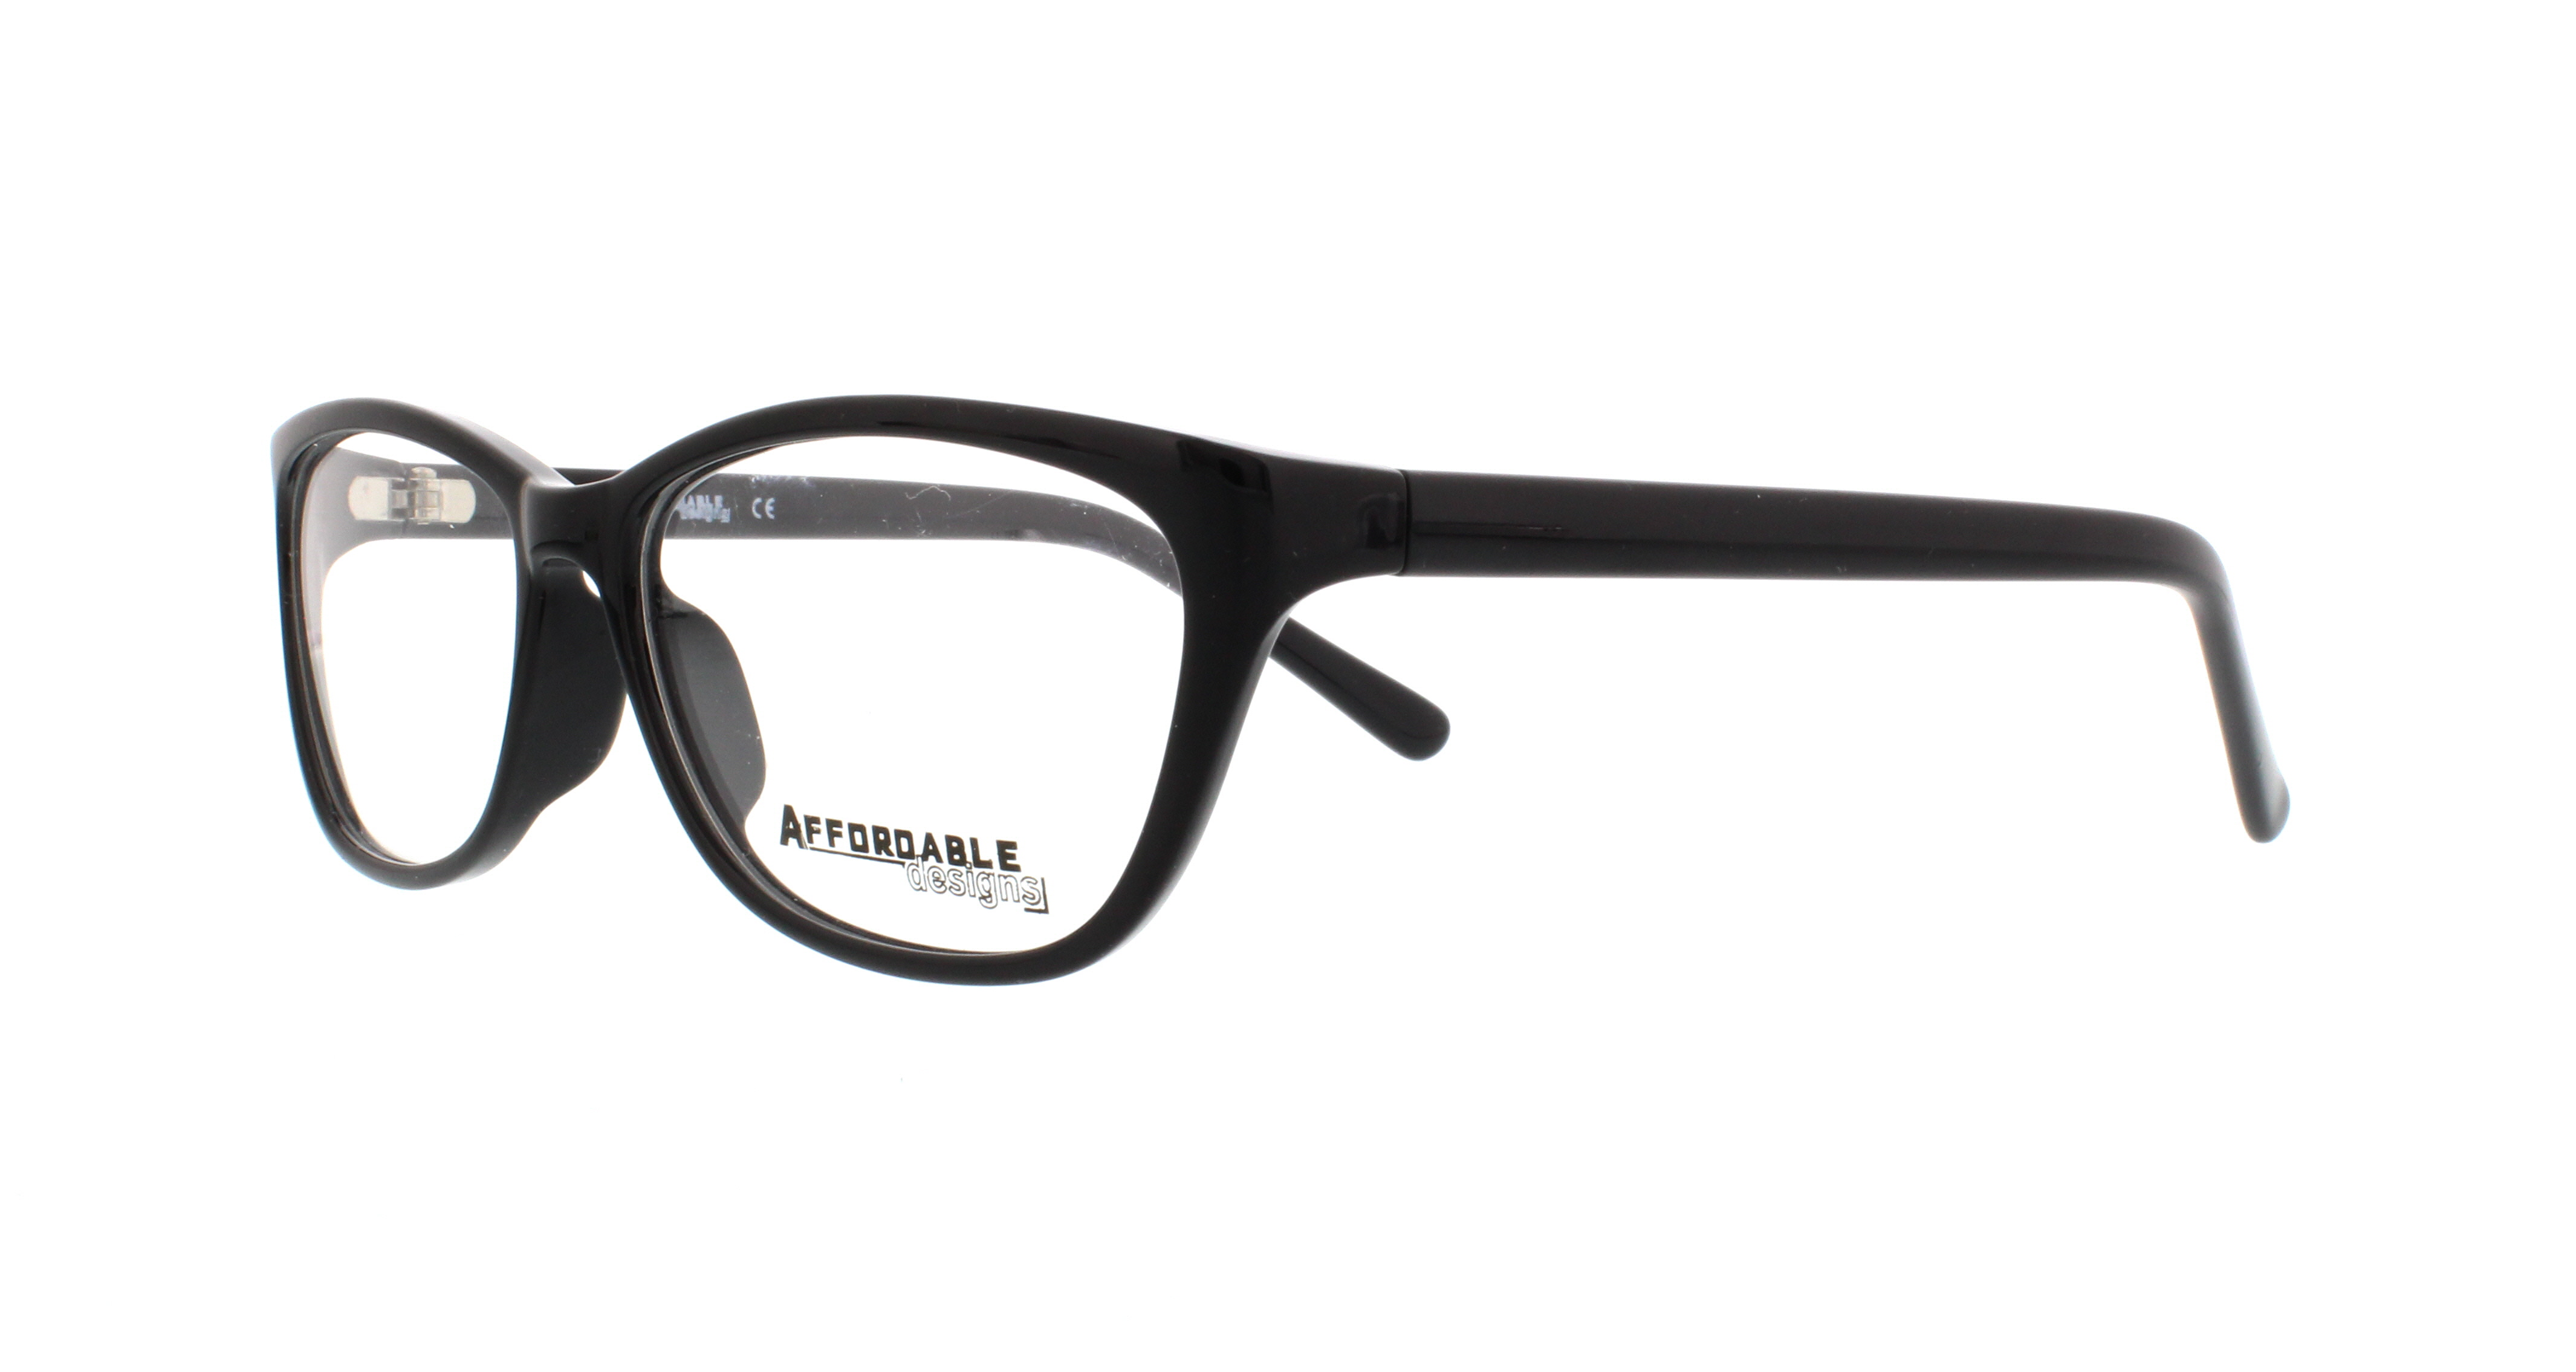 a2638984abbf Designer Frames Outlet. Affordable Designs First Lady